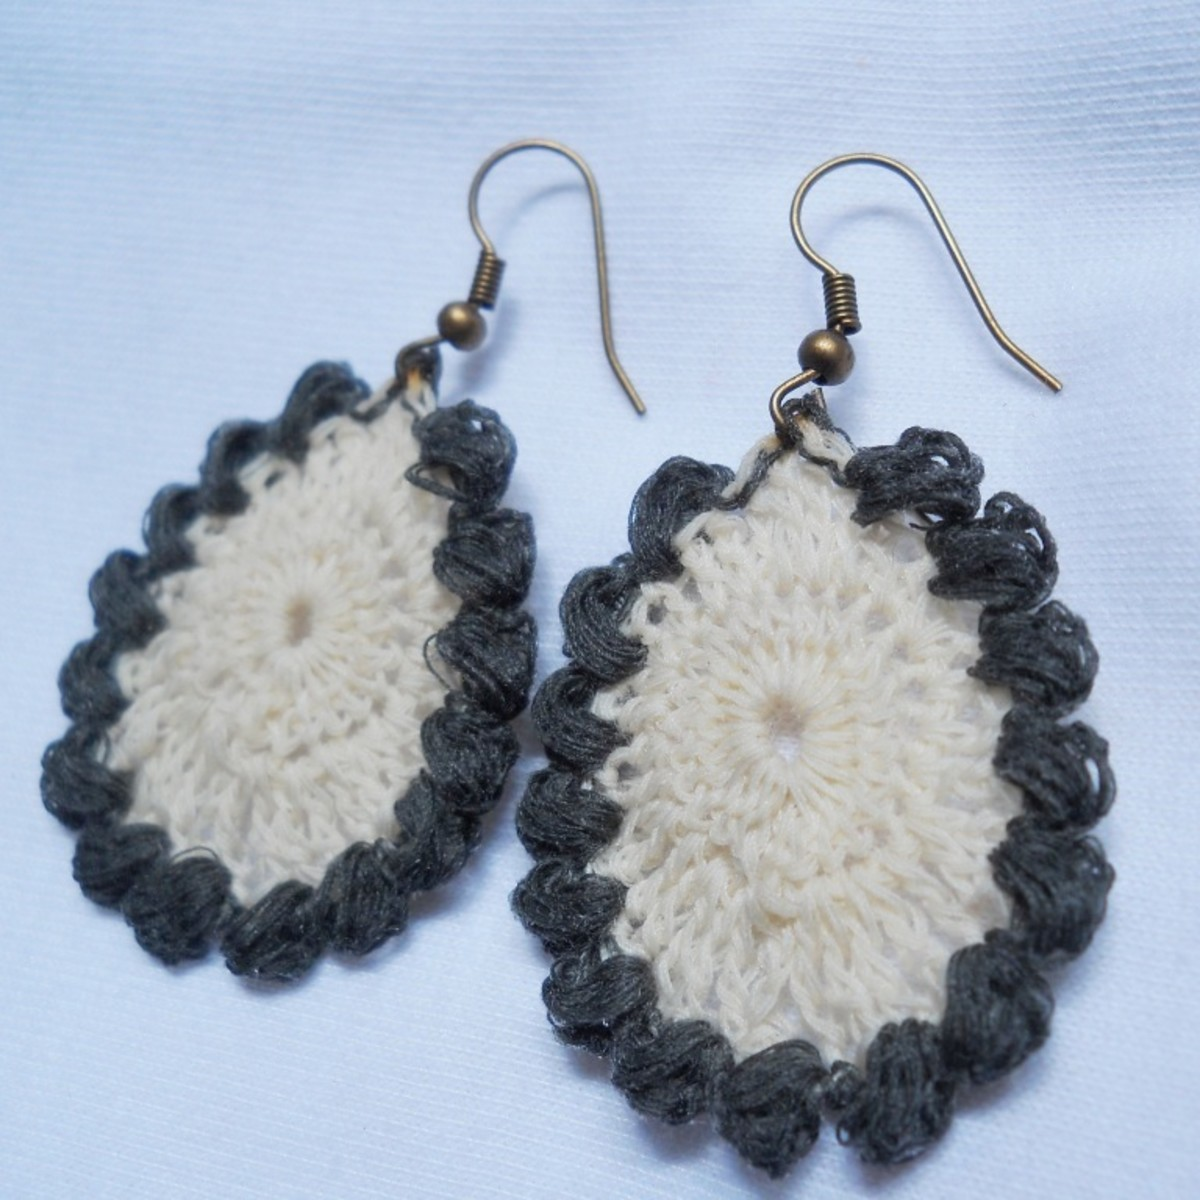 Crochet Teardrop Earring #2